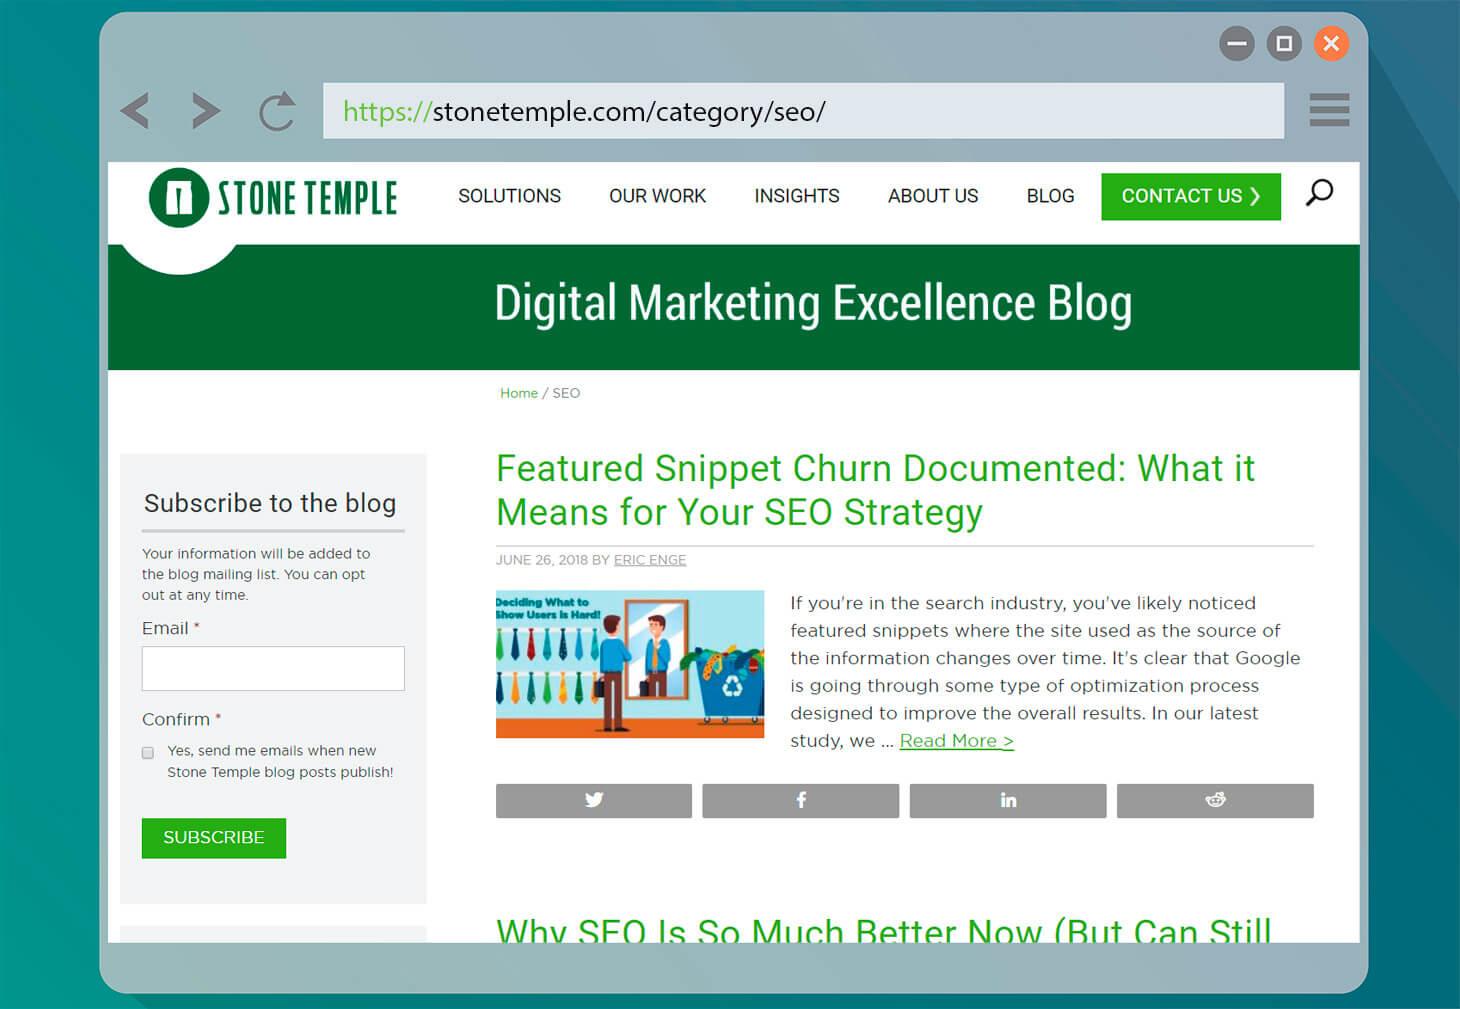 Stone Temple Digital Marketing Excellence Blog